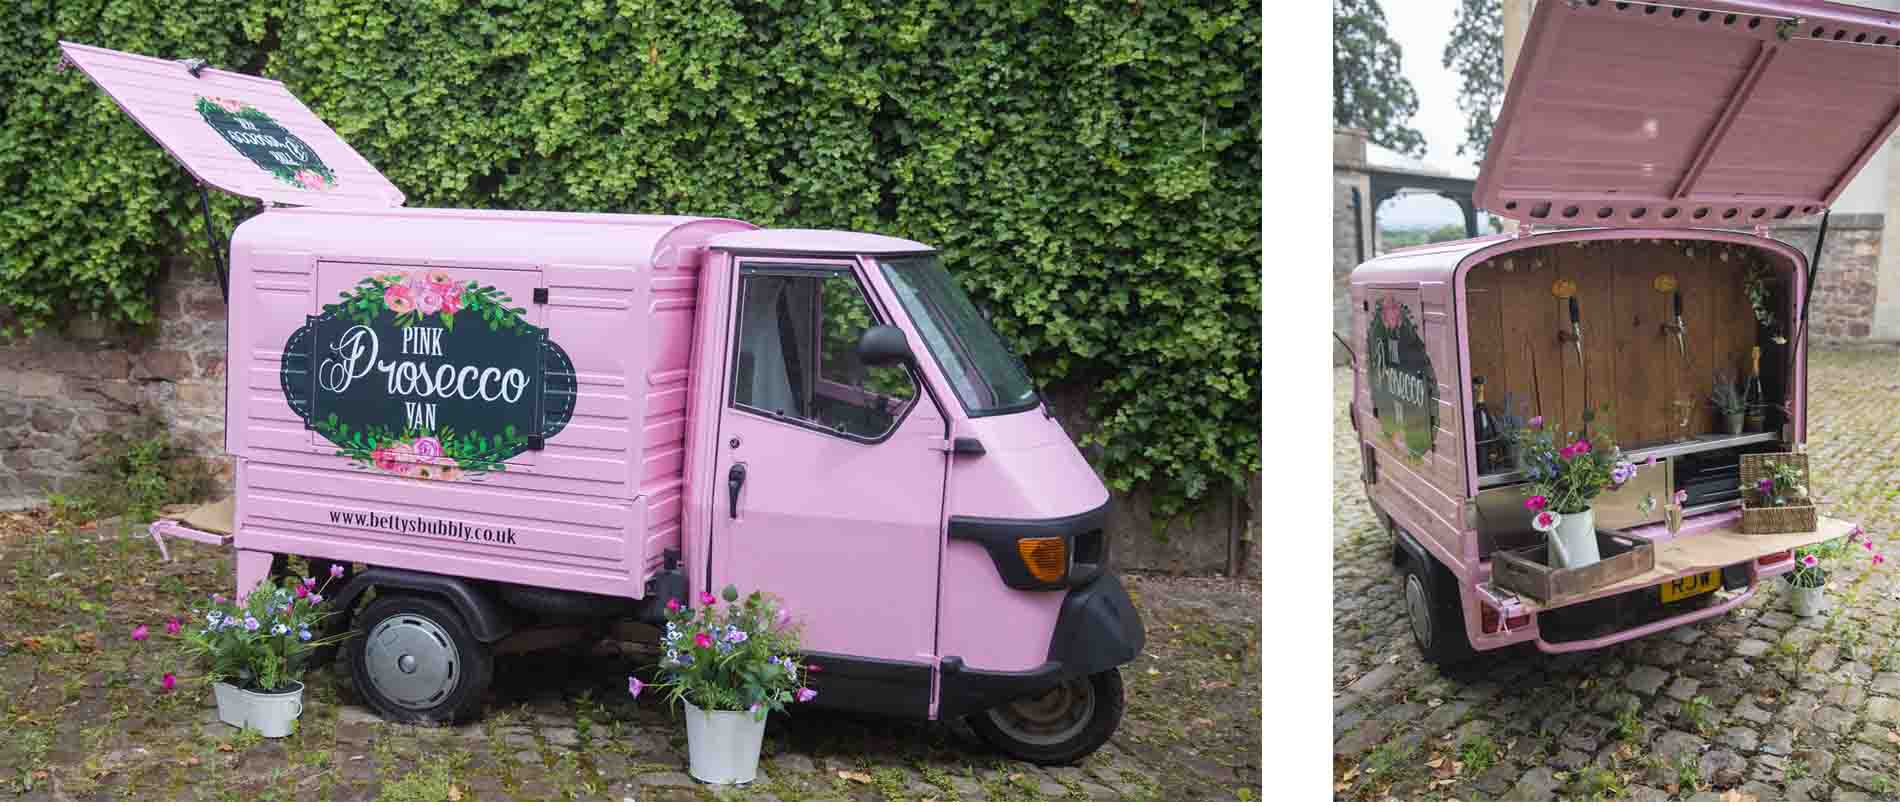 Bettys Bubbly Van